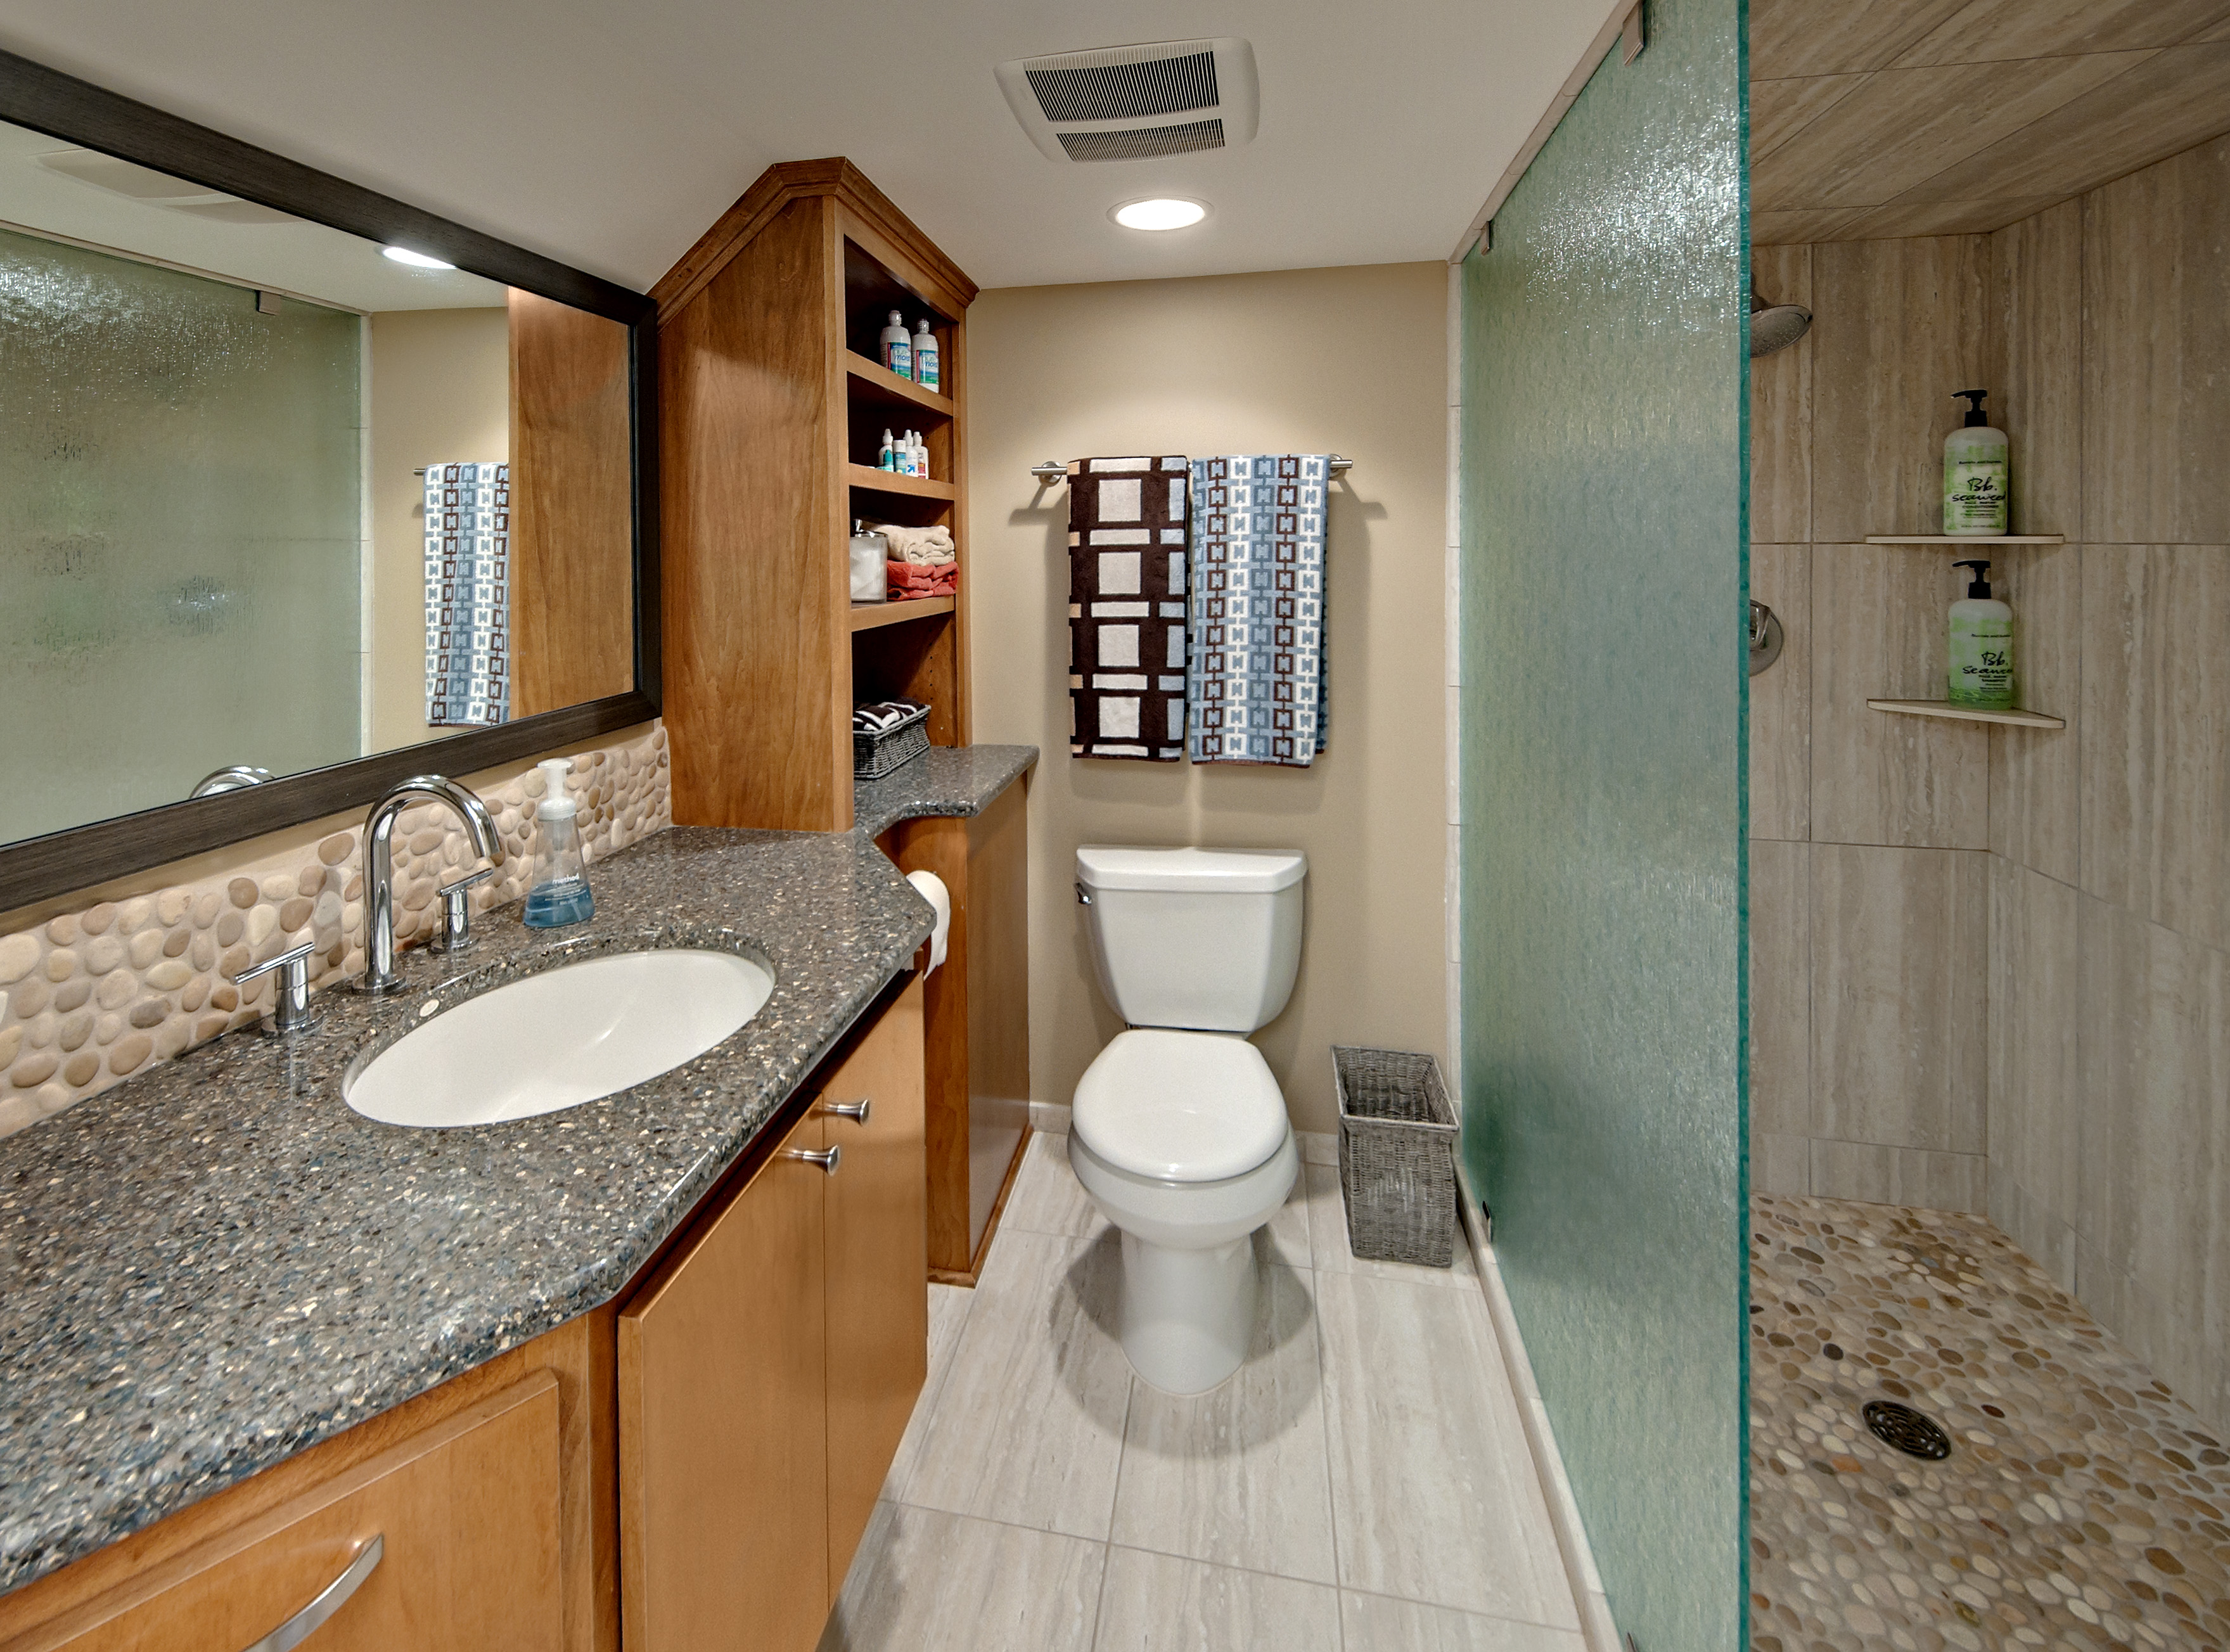 mbros kitchen and bath design North suburban bathroom insurance restoration